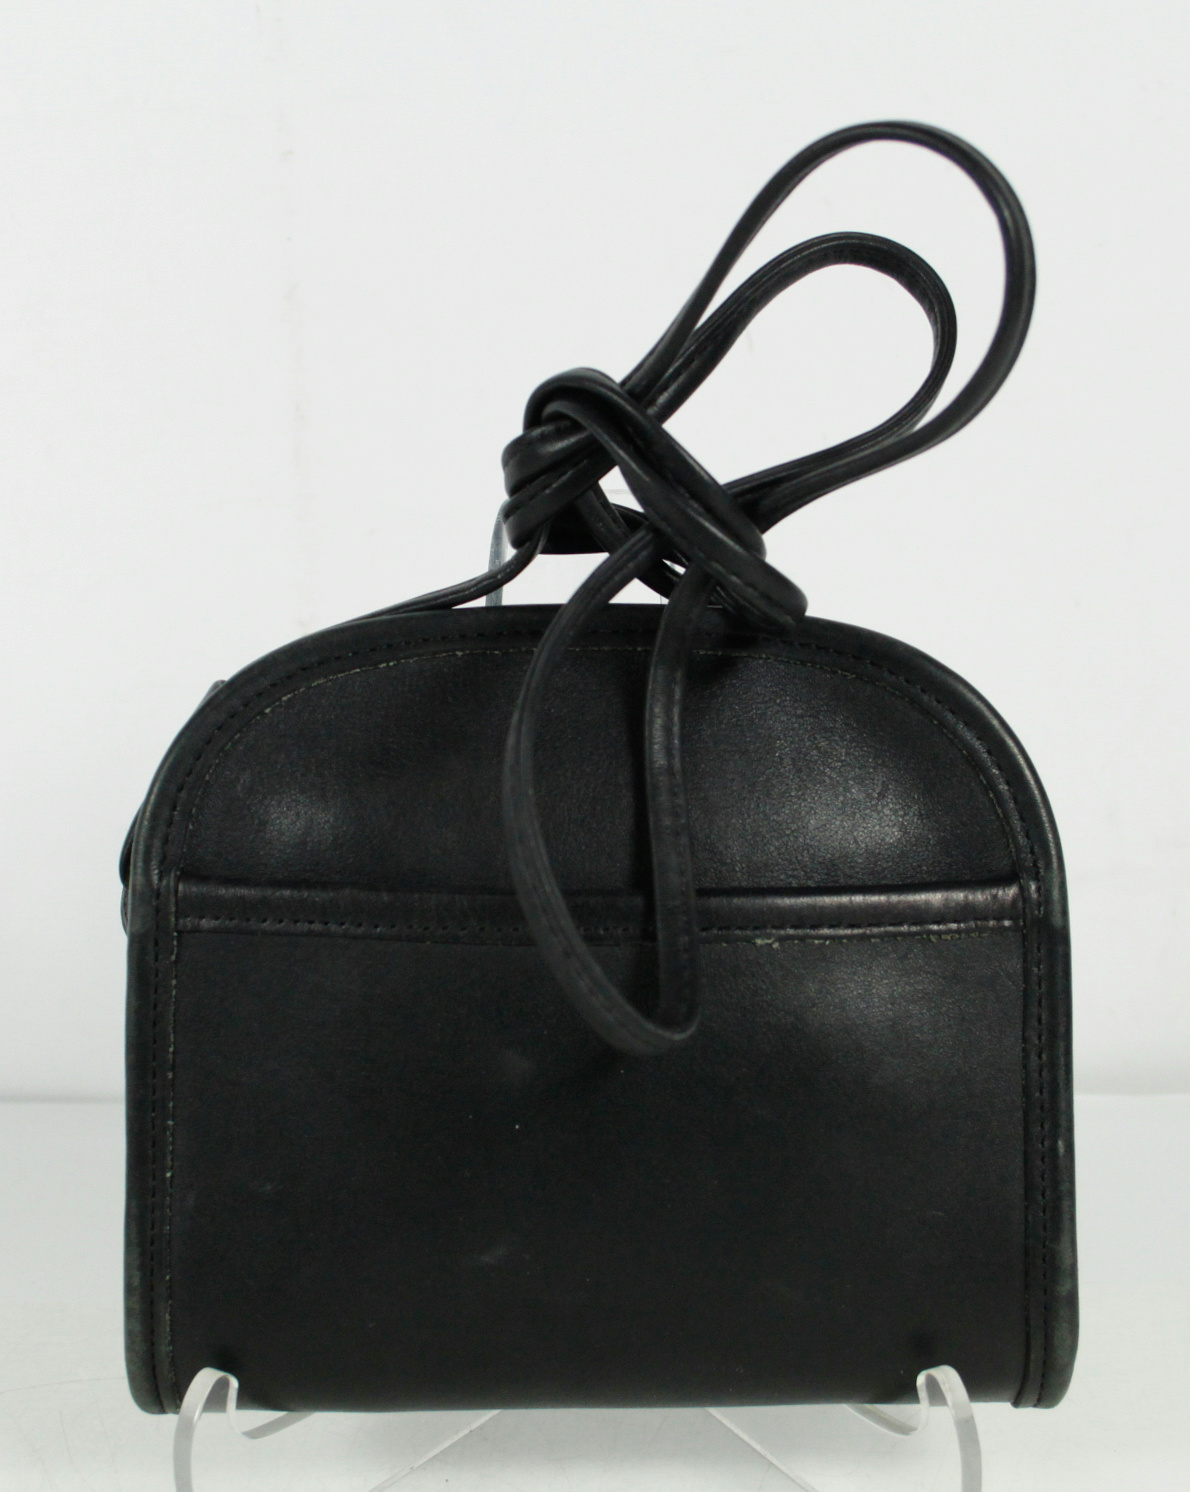 f3a1e9a478ec Coach Black Leather Crossbody Bag | Stanford Center for Opportunity ...